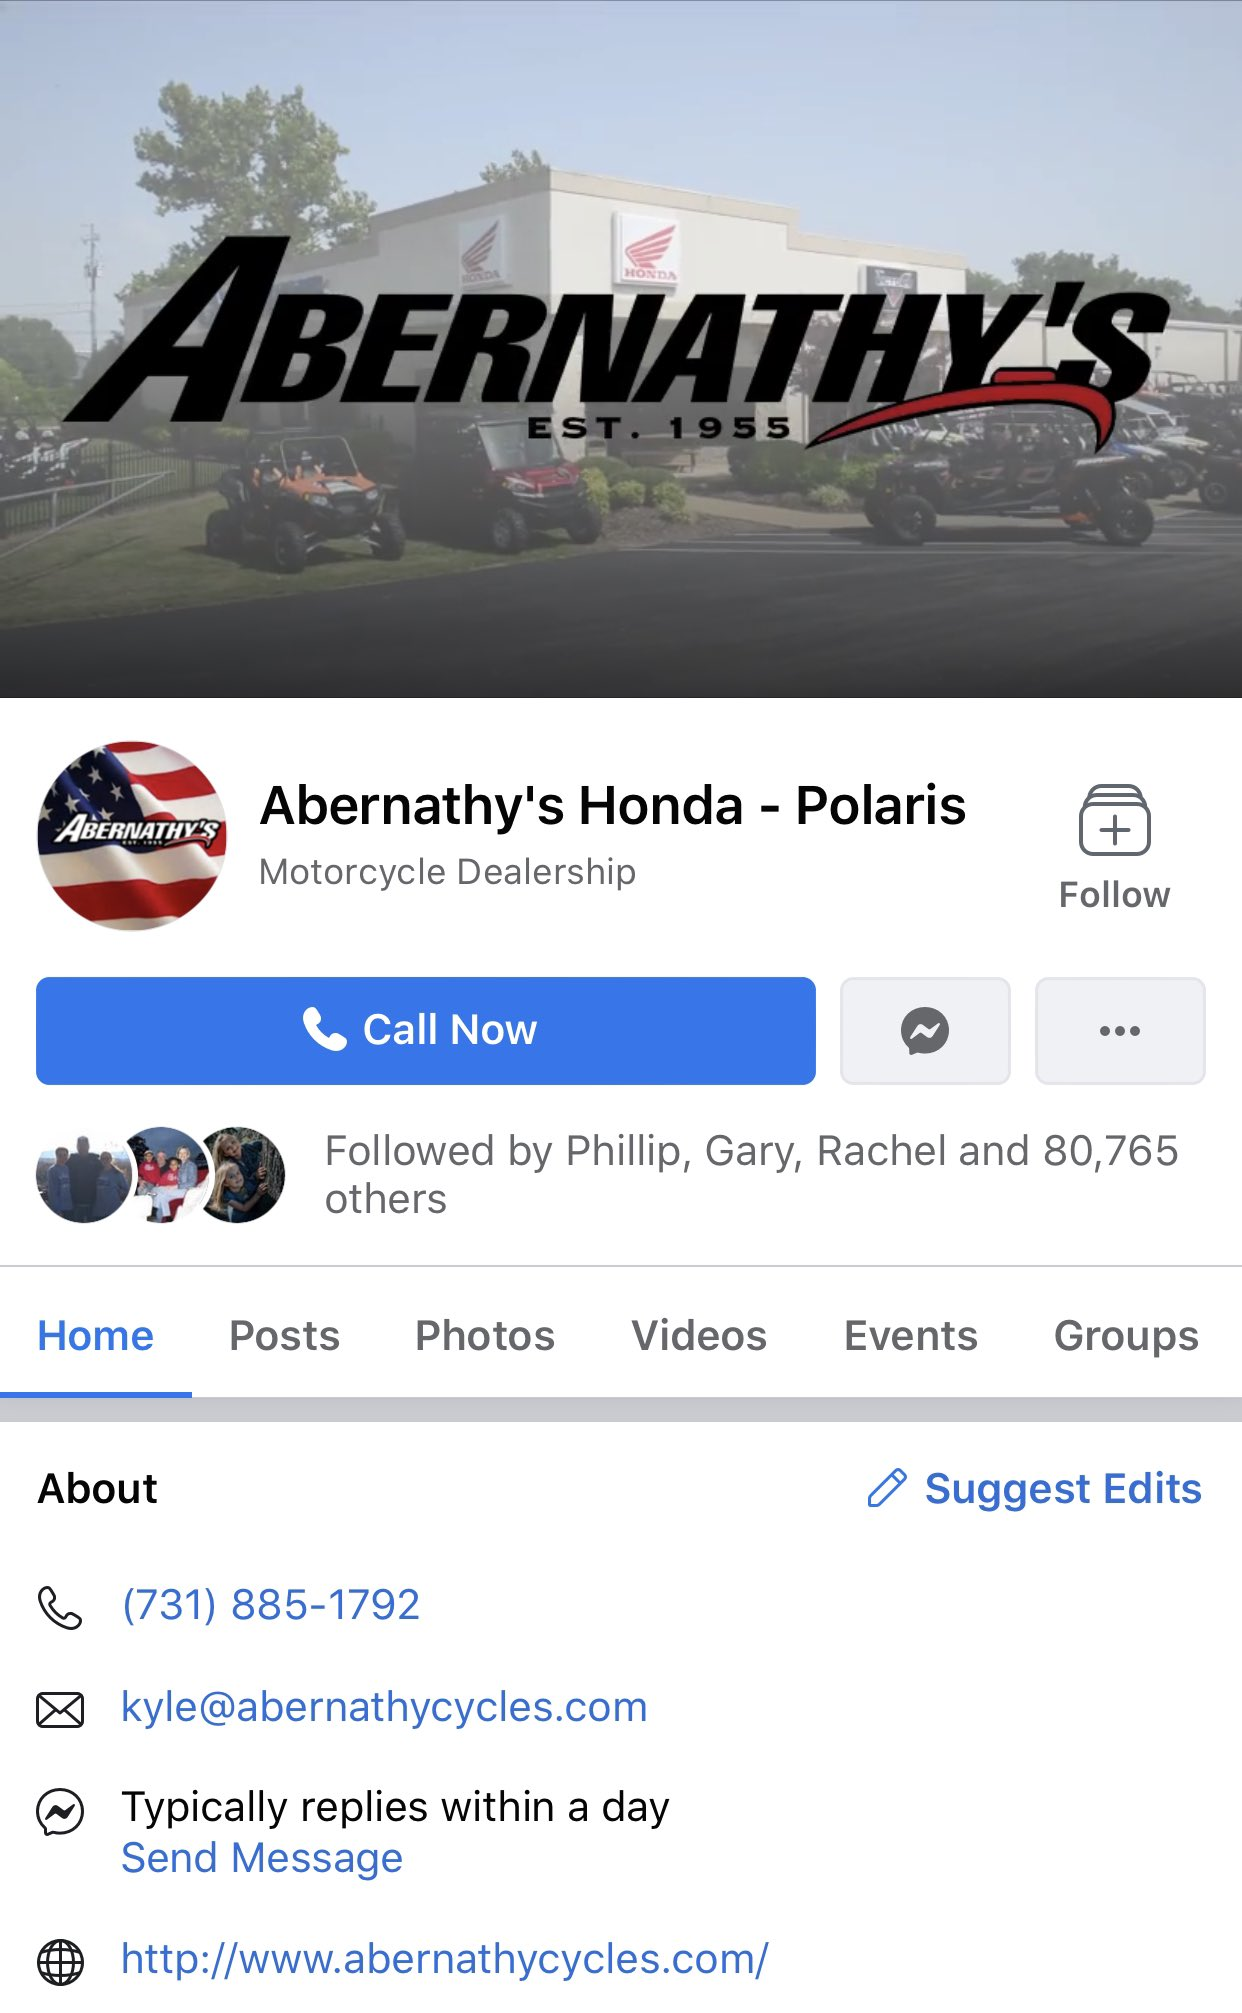 the tennessee holler on twitter union city tn russell abernathy whose dealerships sell harleydavidson honda and more wants you to know he s super duper racist and you should probably by your motor the tennessee holler on twitter union